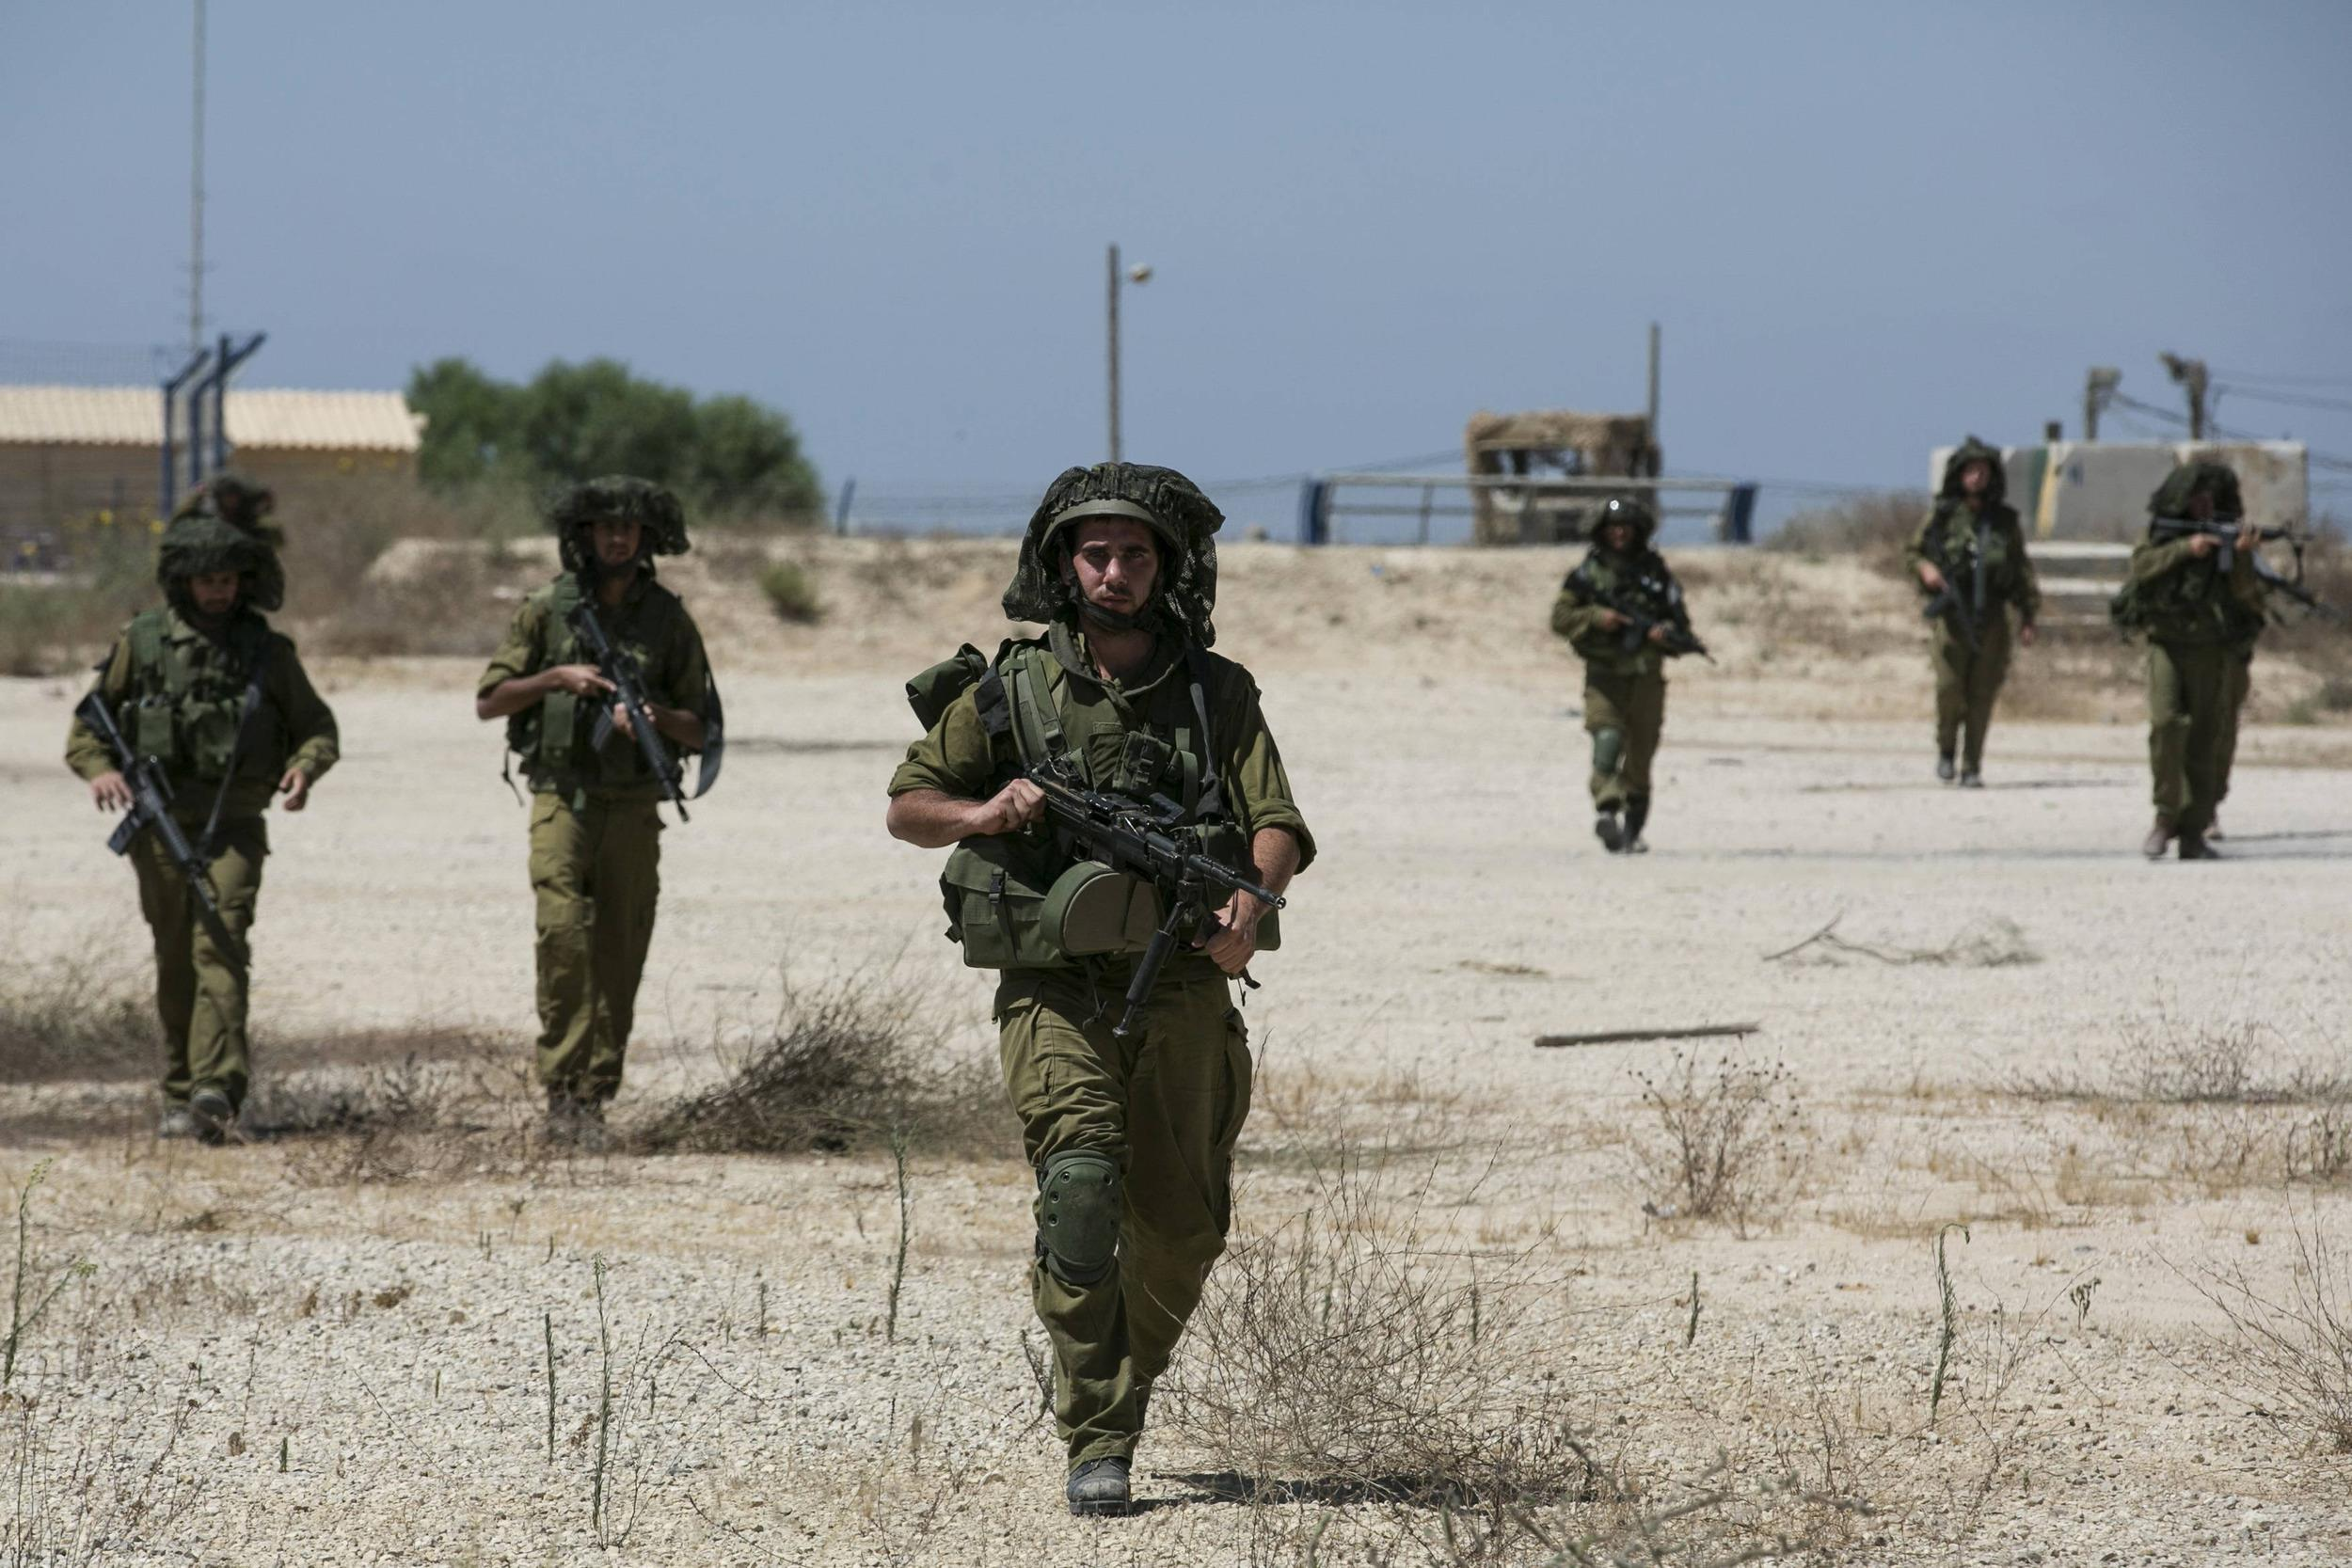 Image: Israeli soldiers walk near the border with the Gaza Strip